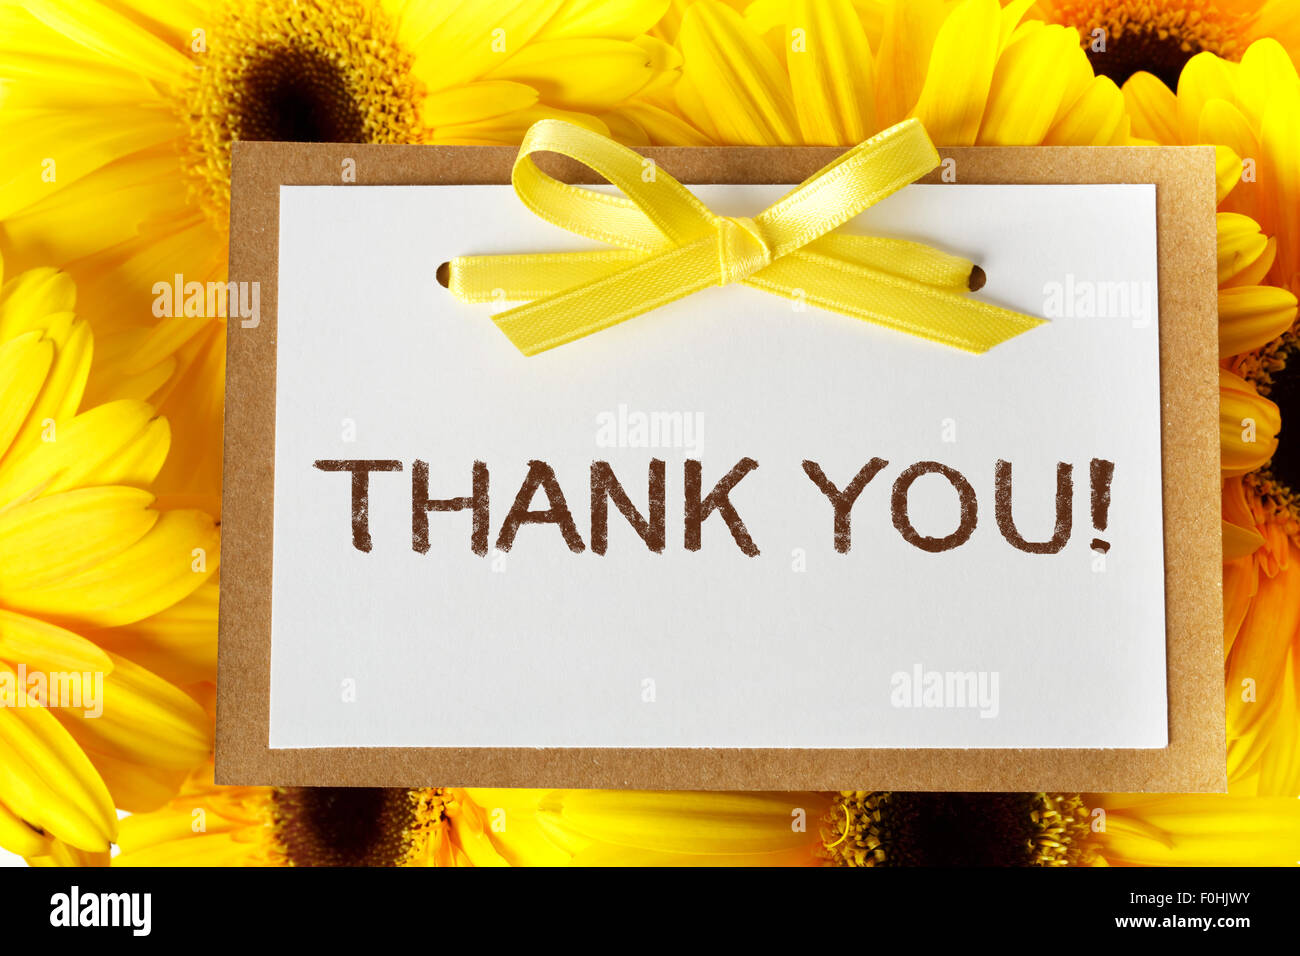 Merci carte message avec gerberas jaune Photo Stock